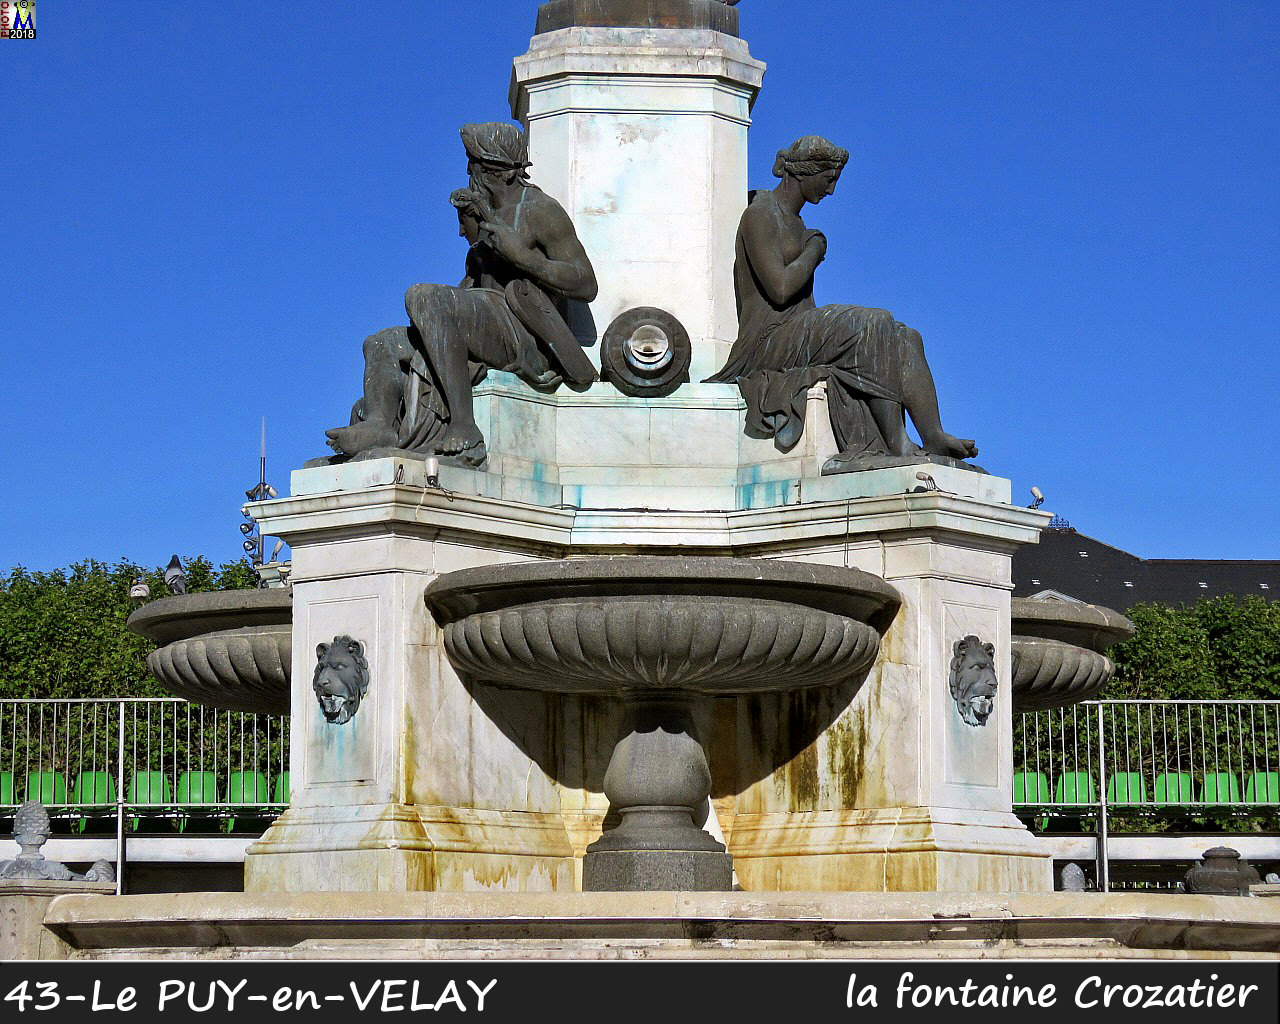 43PUY-EN-VELAY_fontaine_106.jpg